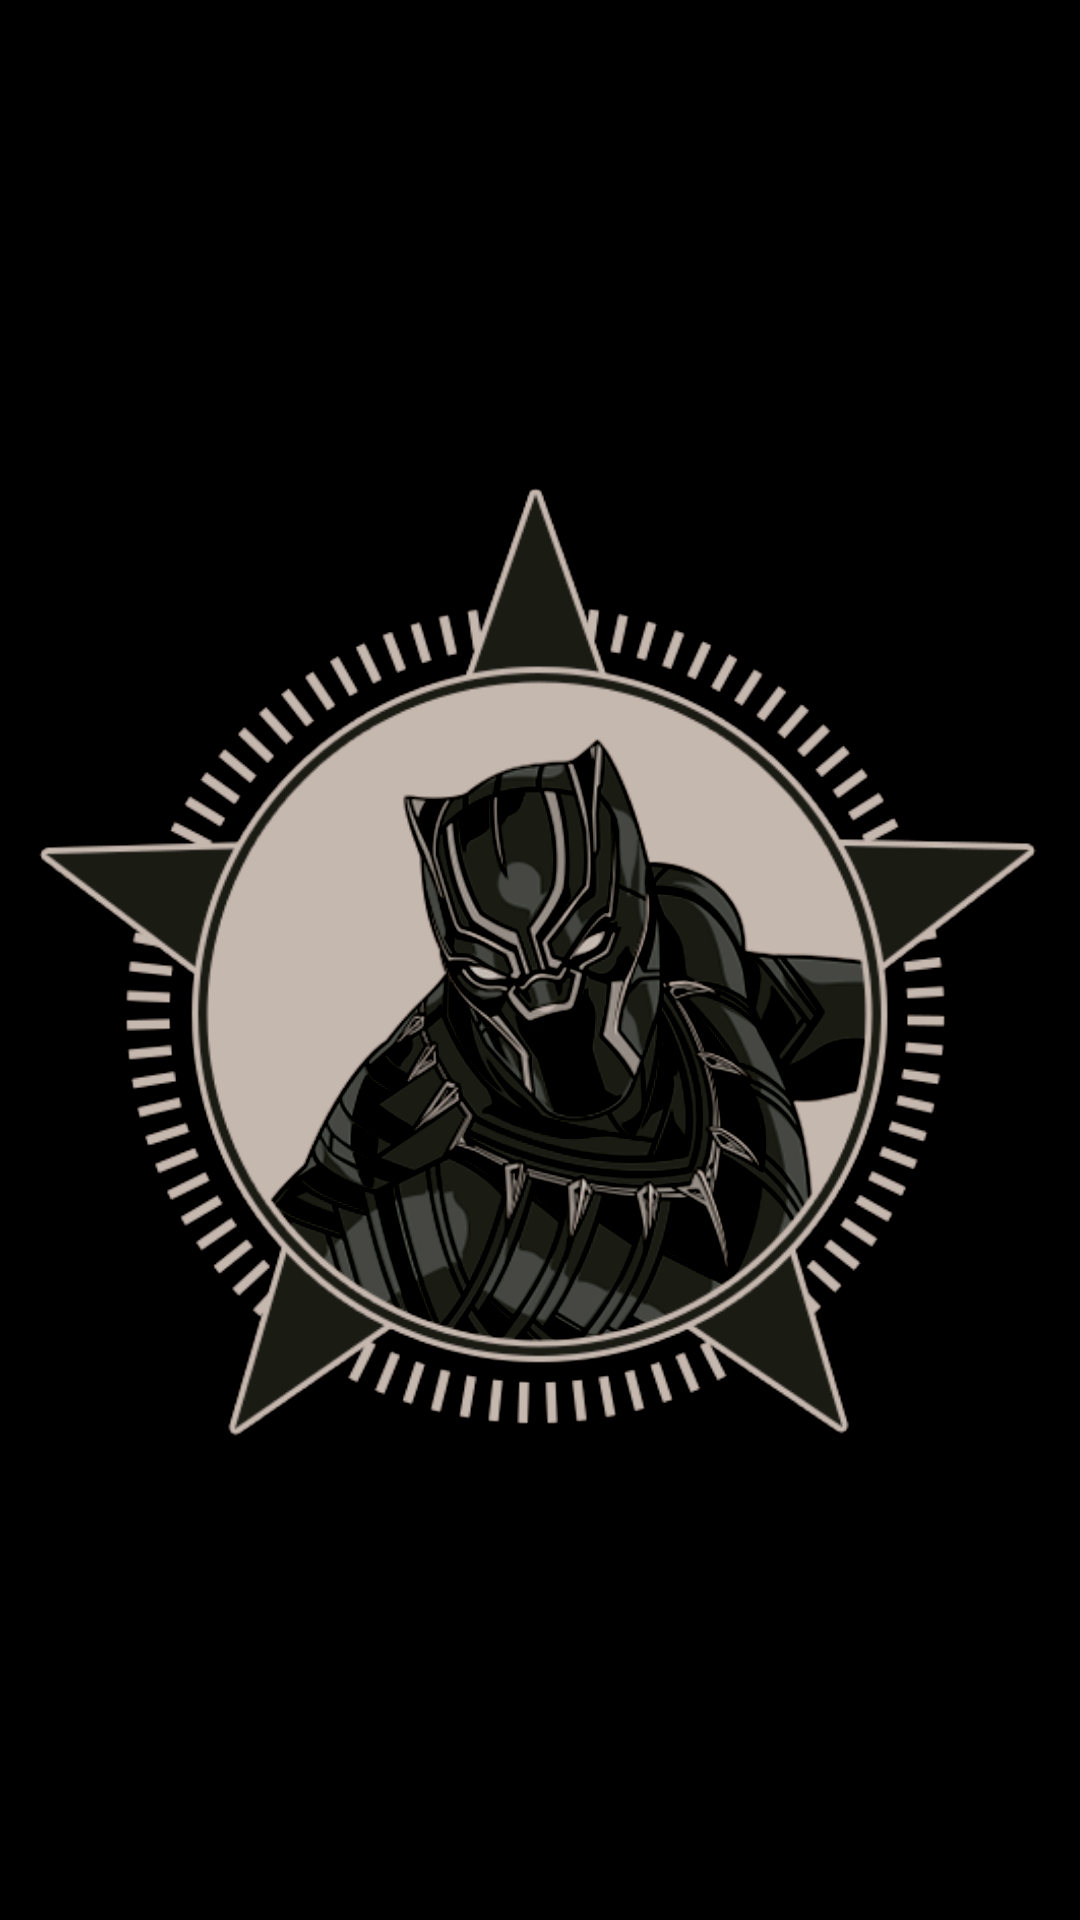 1080x1920 Black Panther Neon Wallpapers